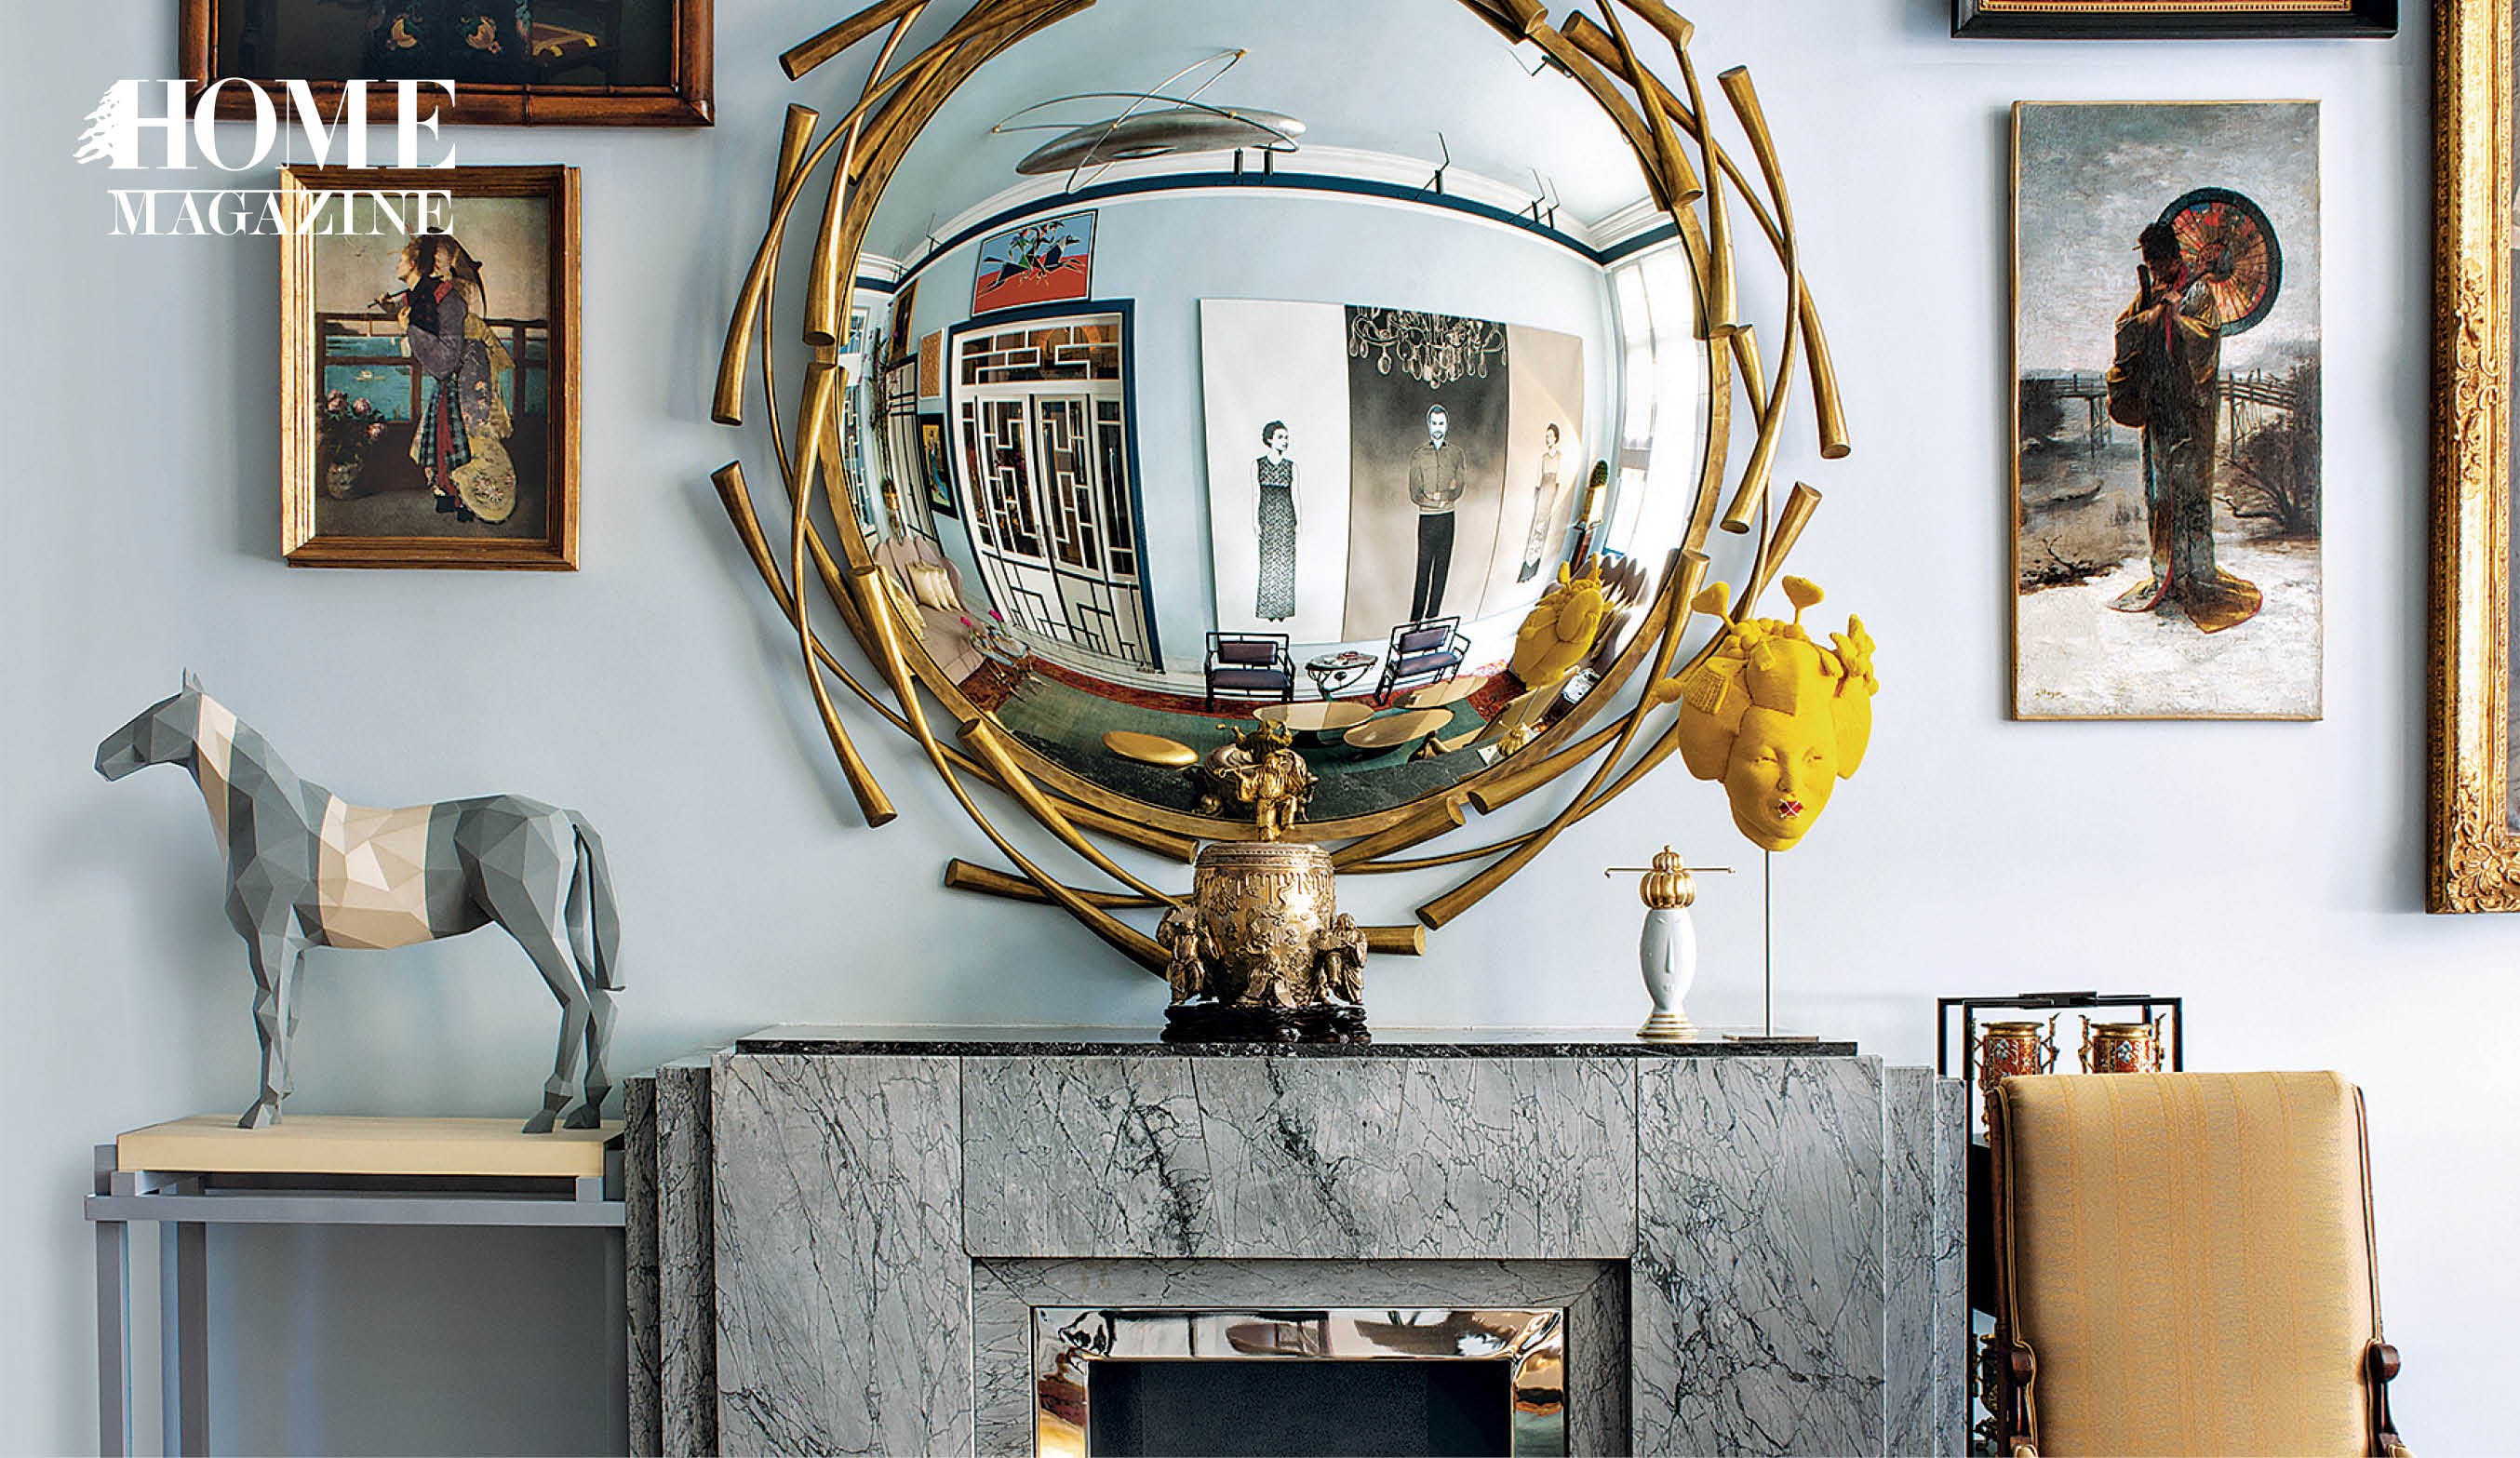 Round mirror, pictures on wall, table, chair, horse statue,chimney